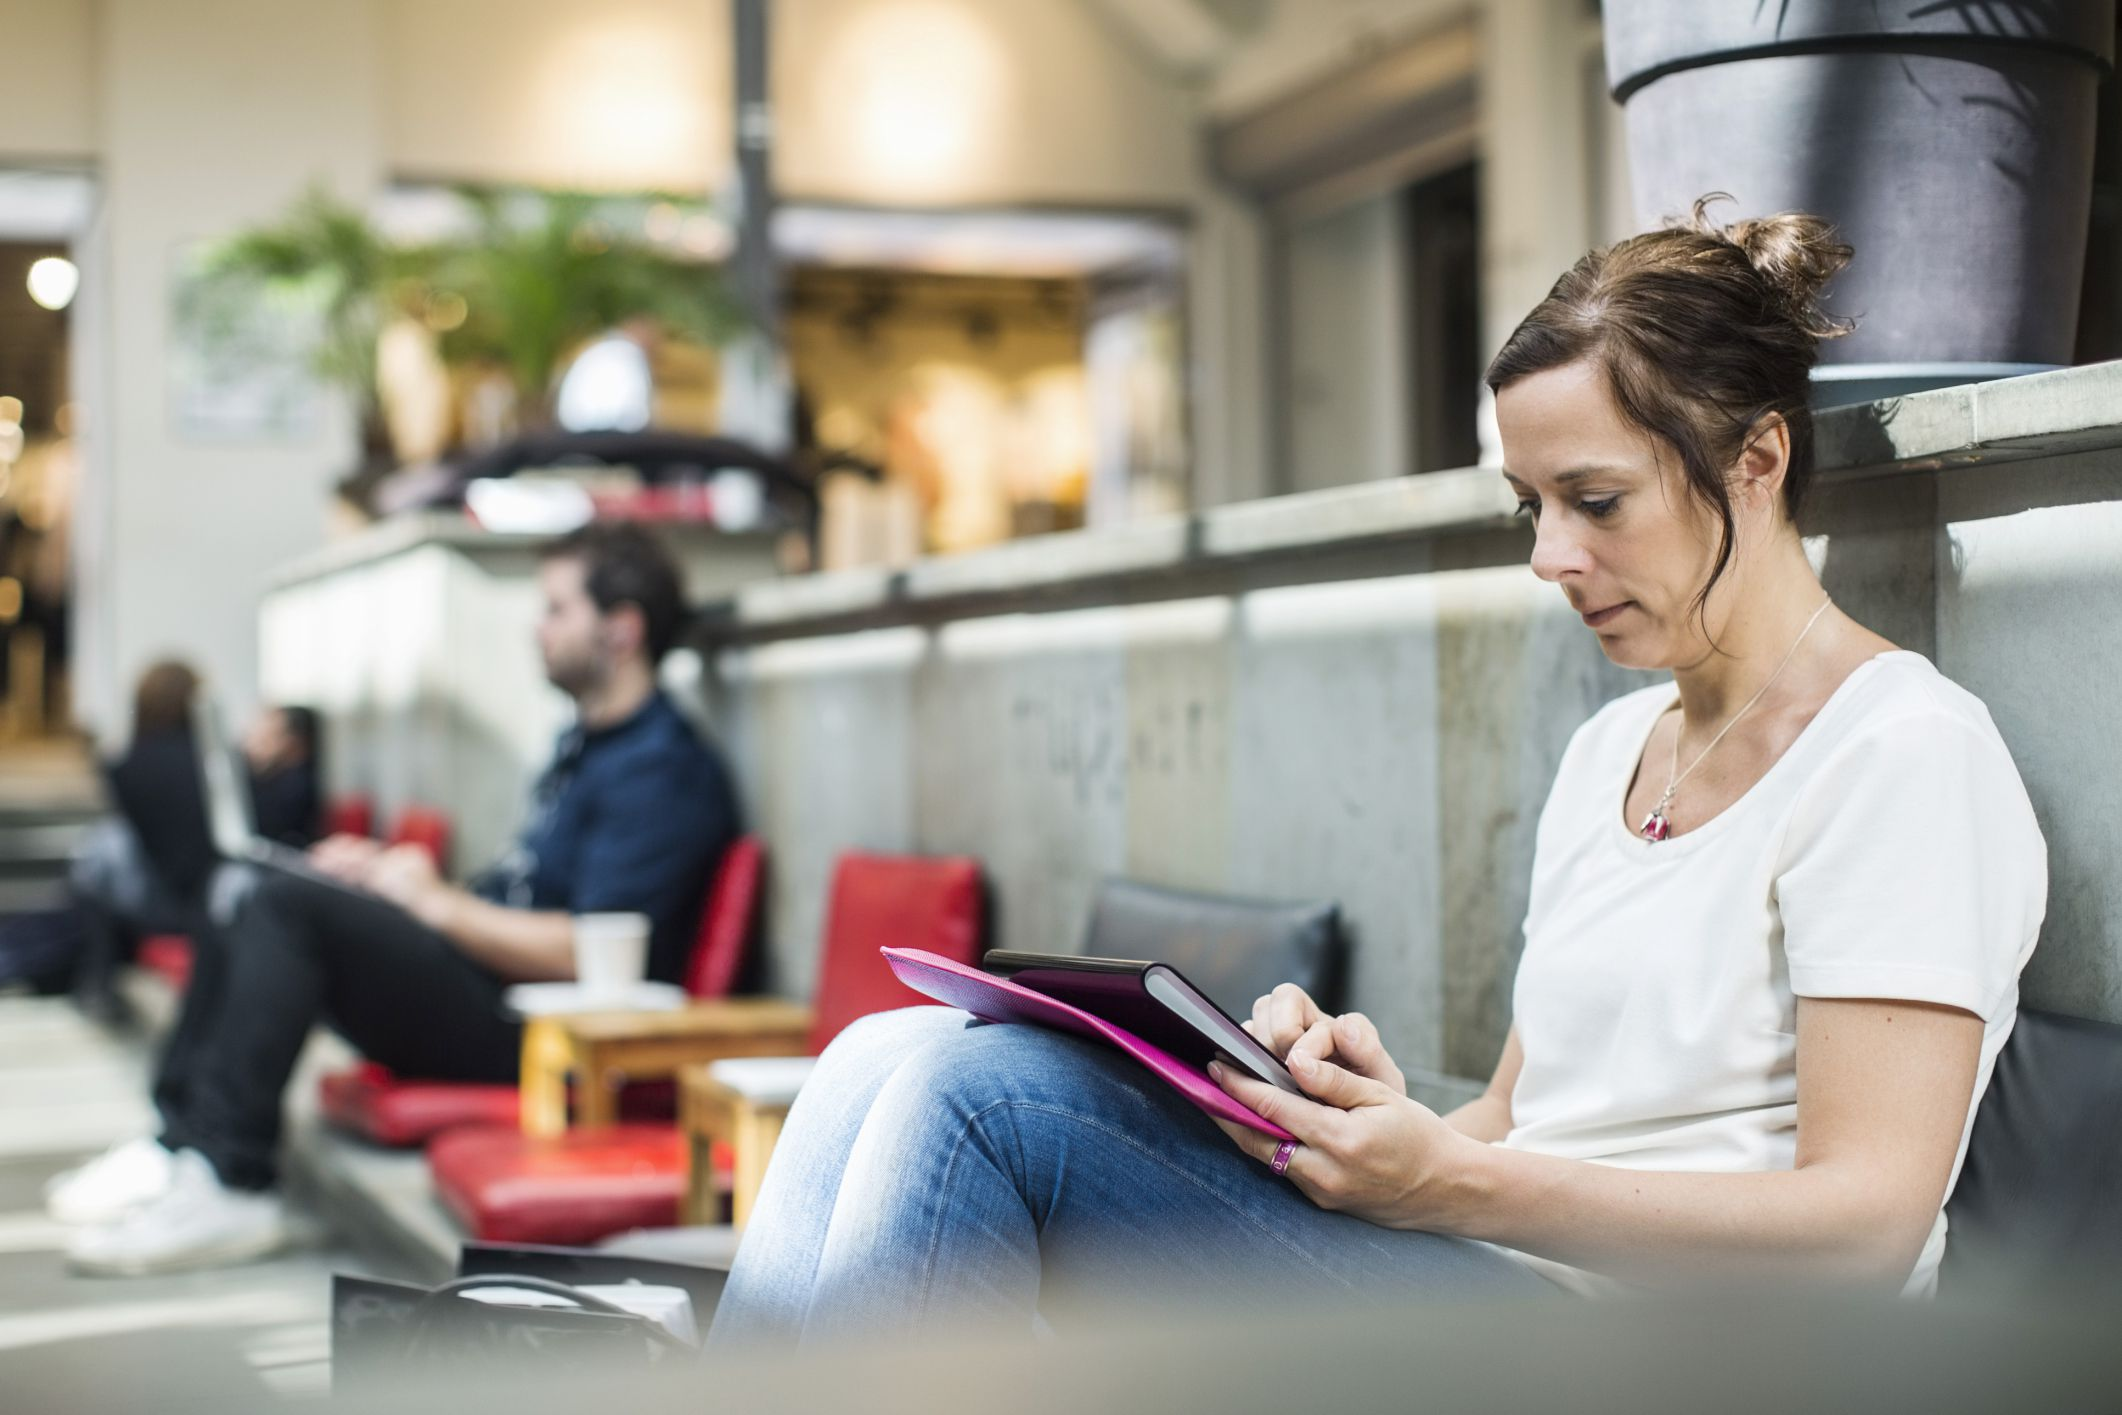 Public and Home Wi-Fi Networks: Unsafe for Banking?